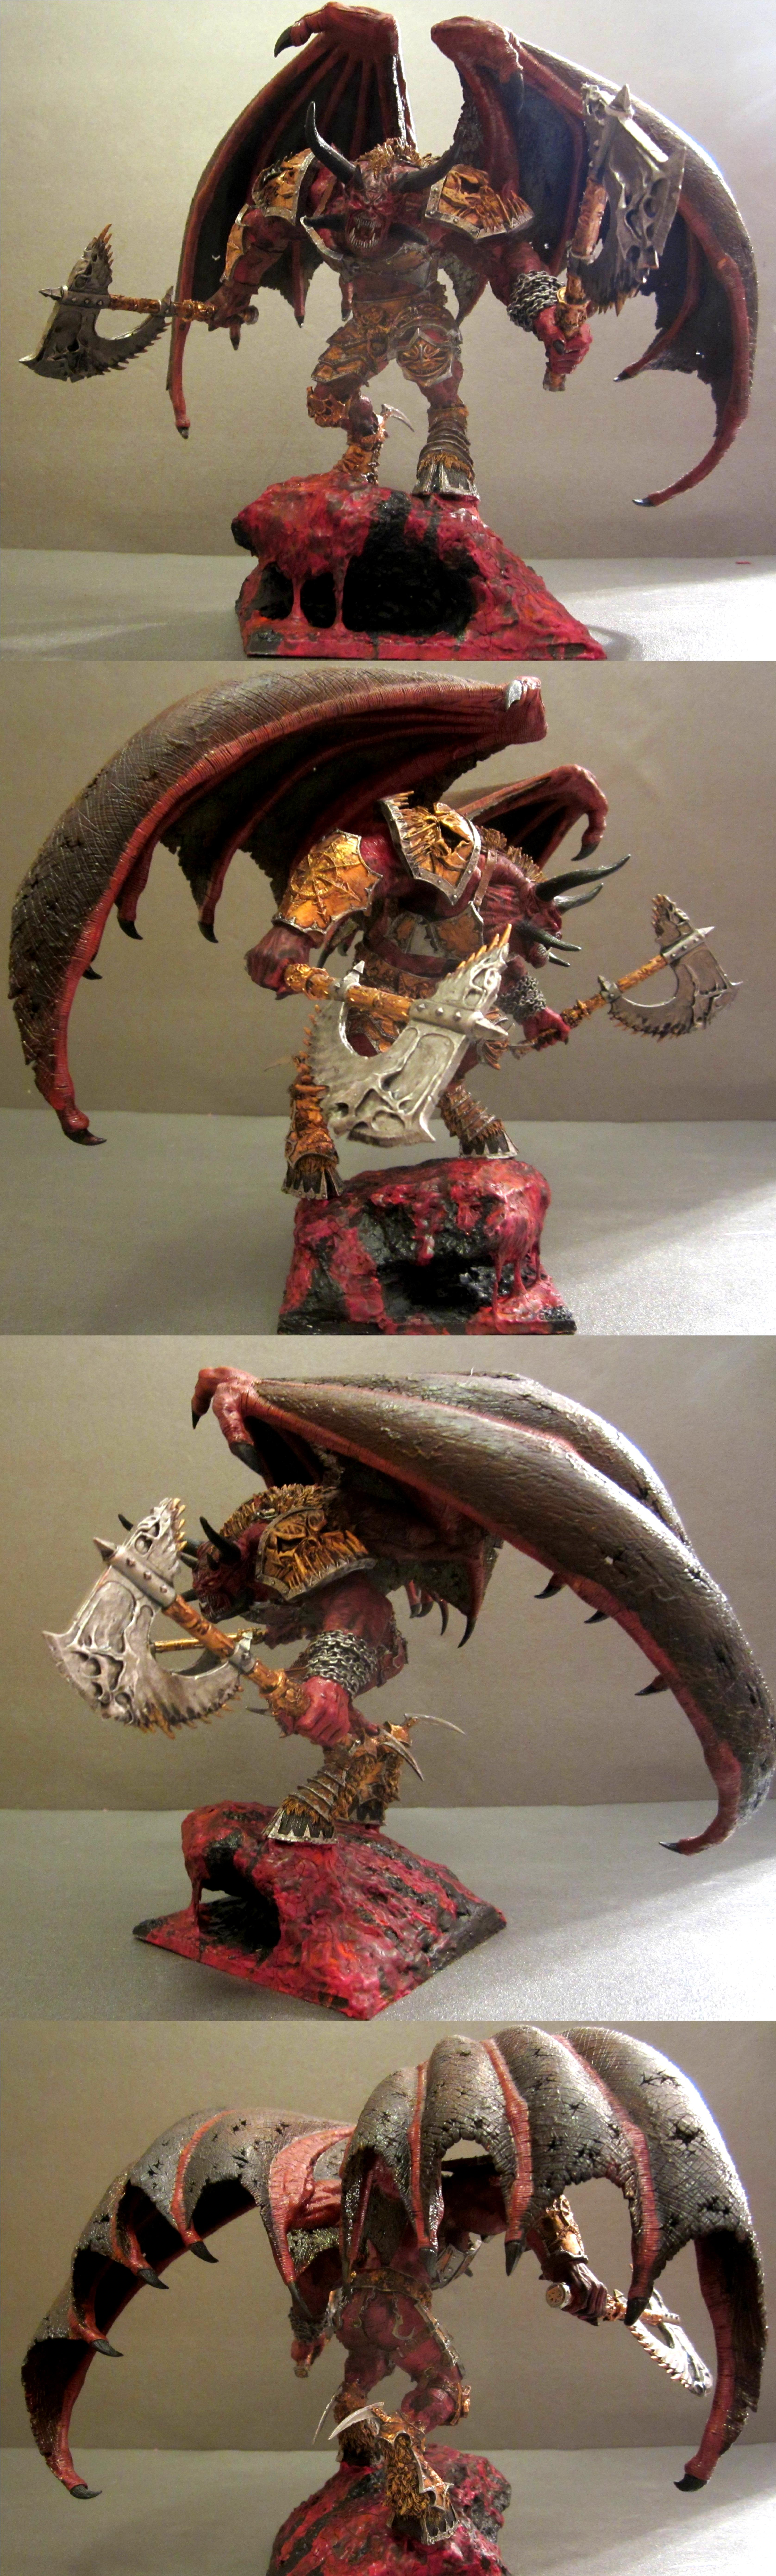 An'ggraath, Bloodthirster, Chaos, Chaos Space Marines, Daemonic, Daemons, Incursion, Lord, Skarbrand, Warhammer 40,000